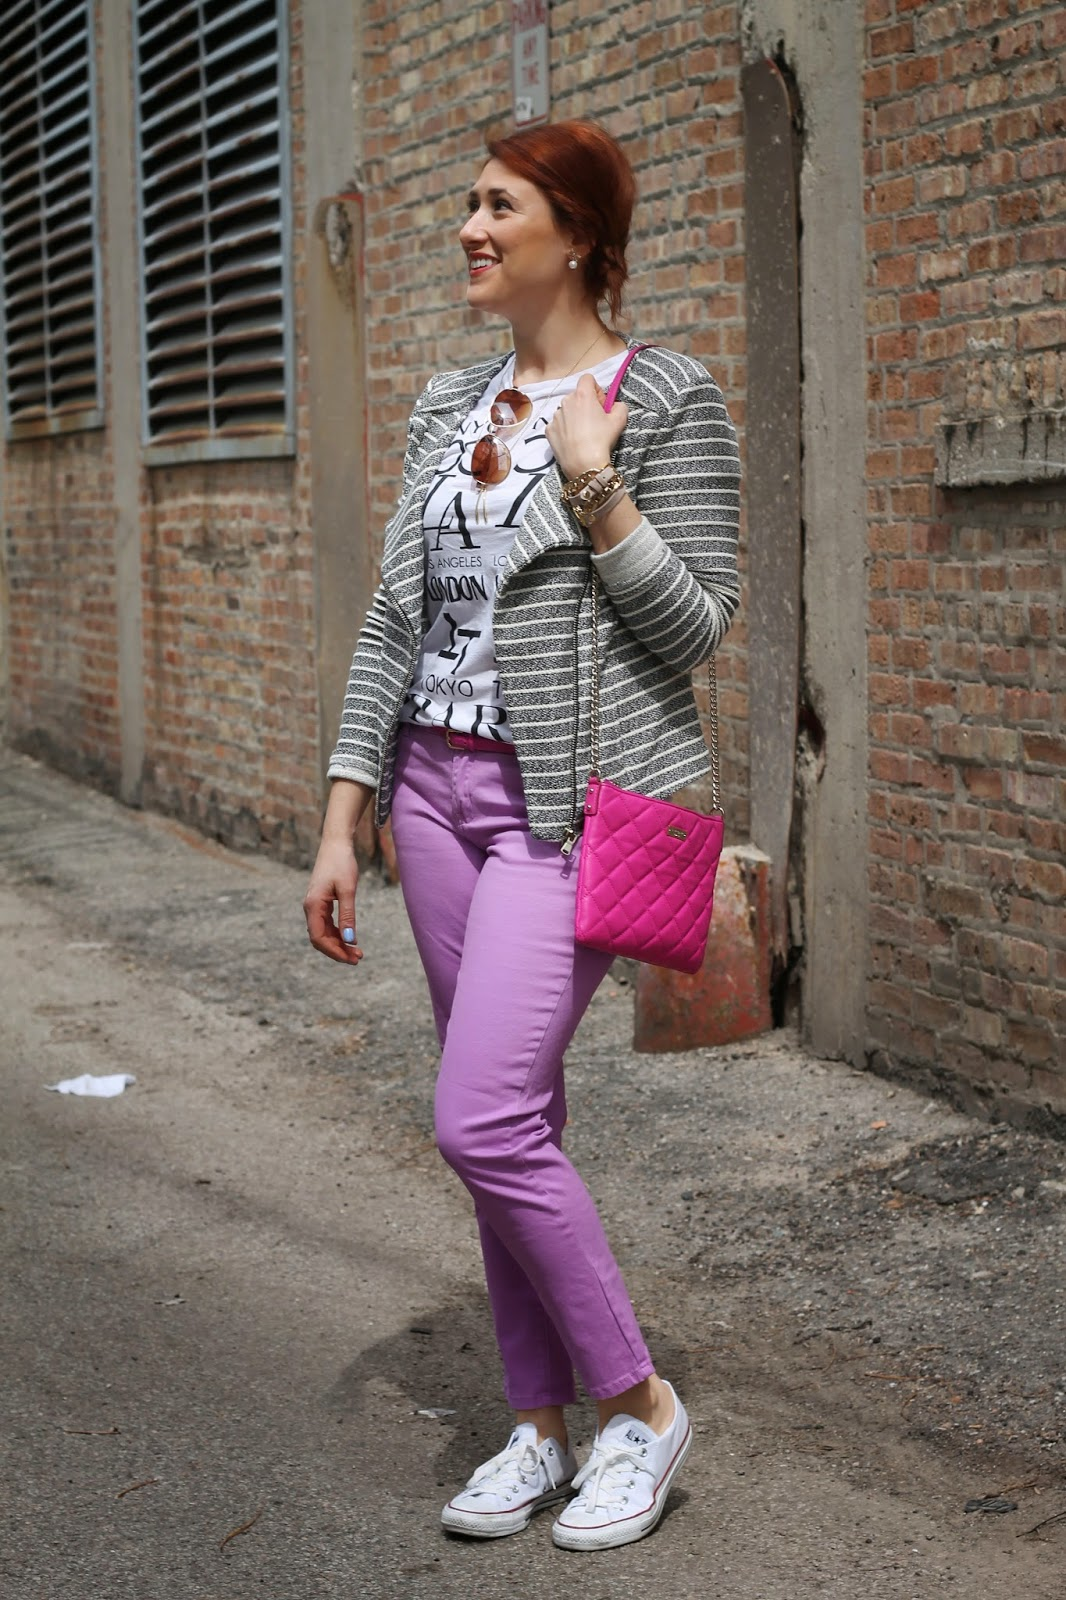 kate, spade, quilted, pink